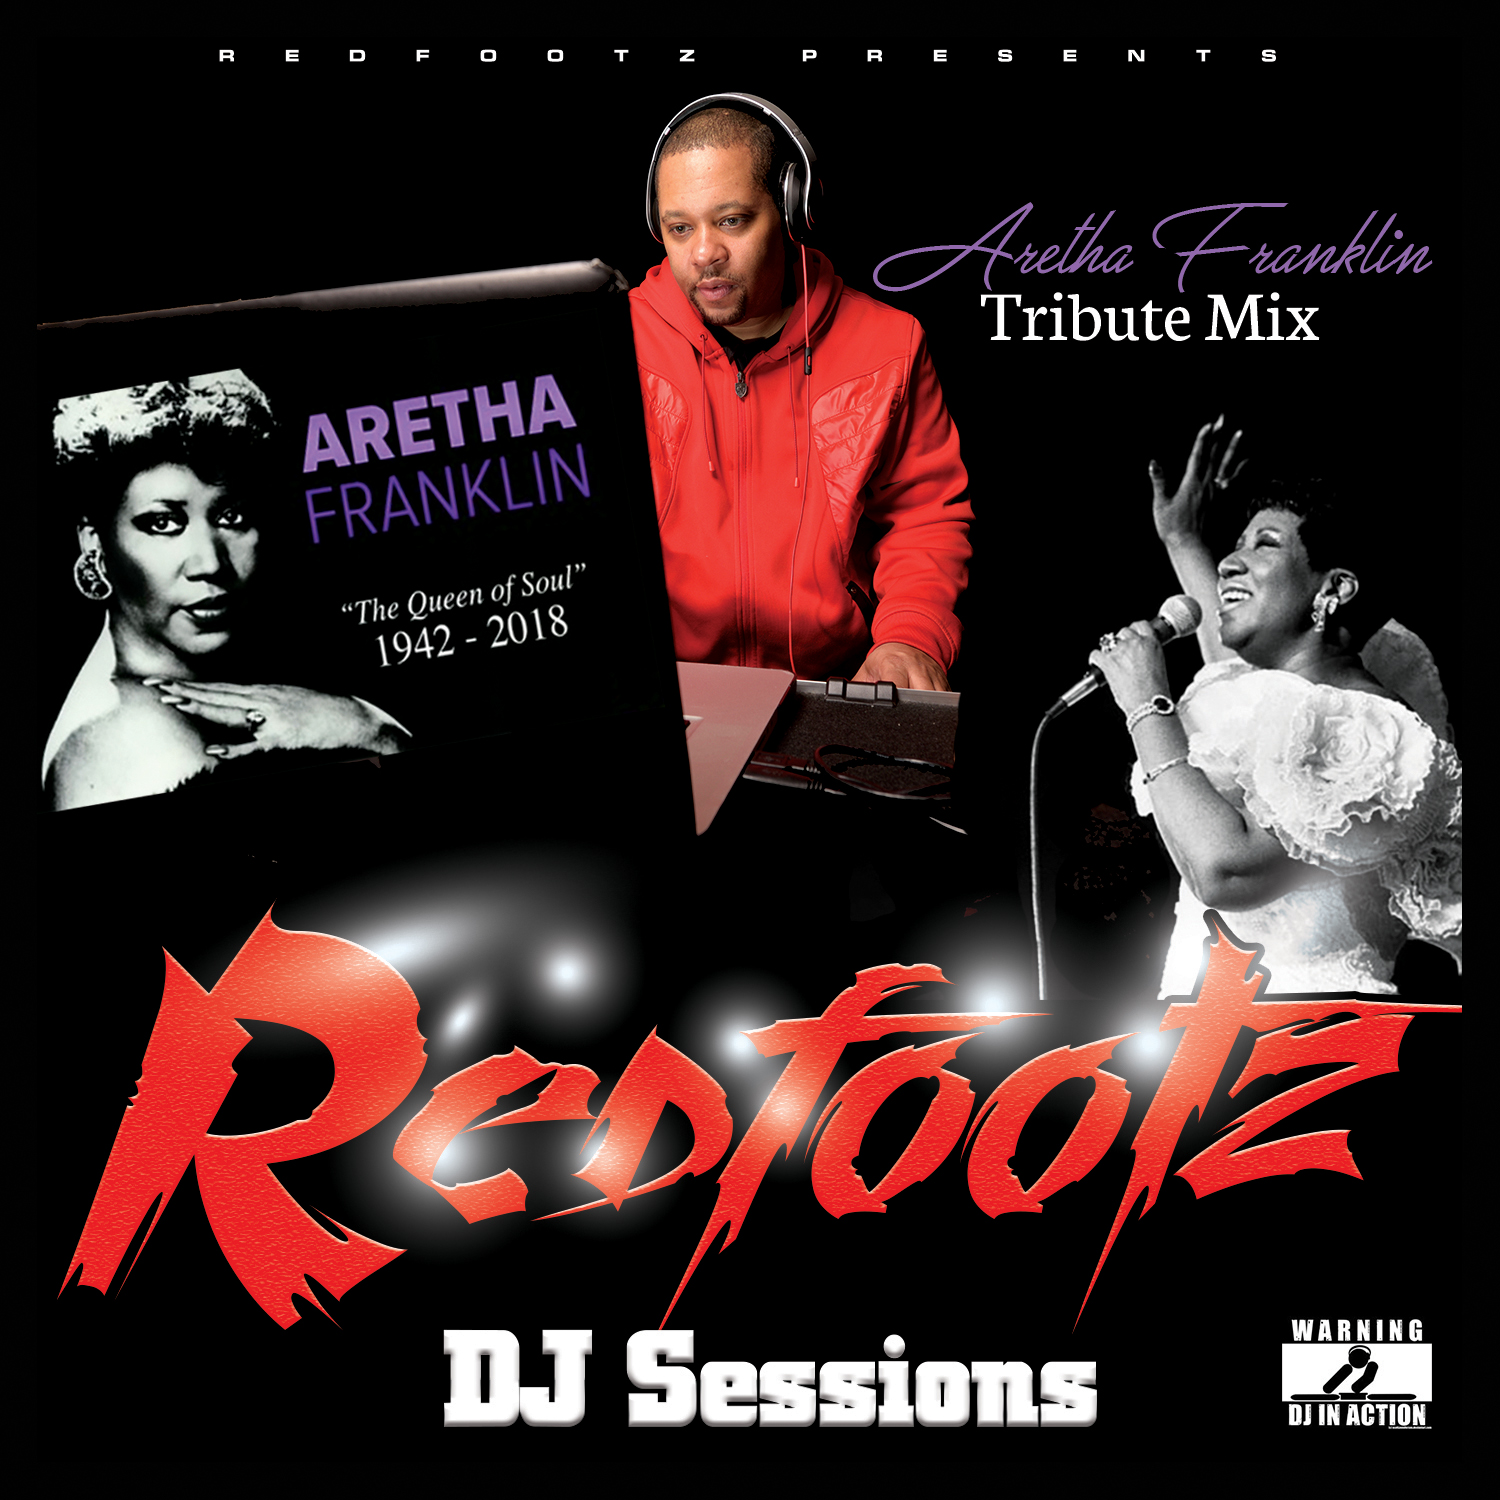 Redfootz DJ Sessions Holiday Mix cover